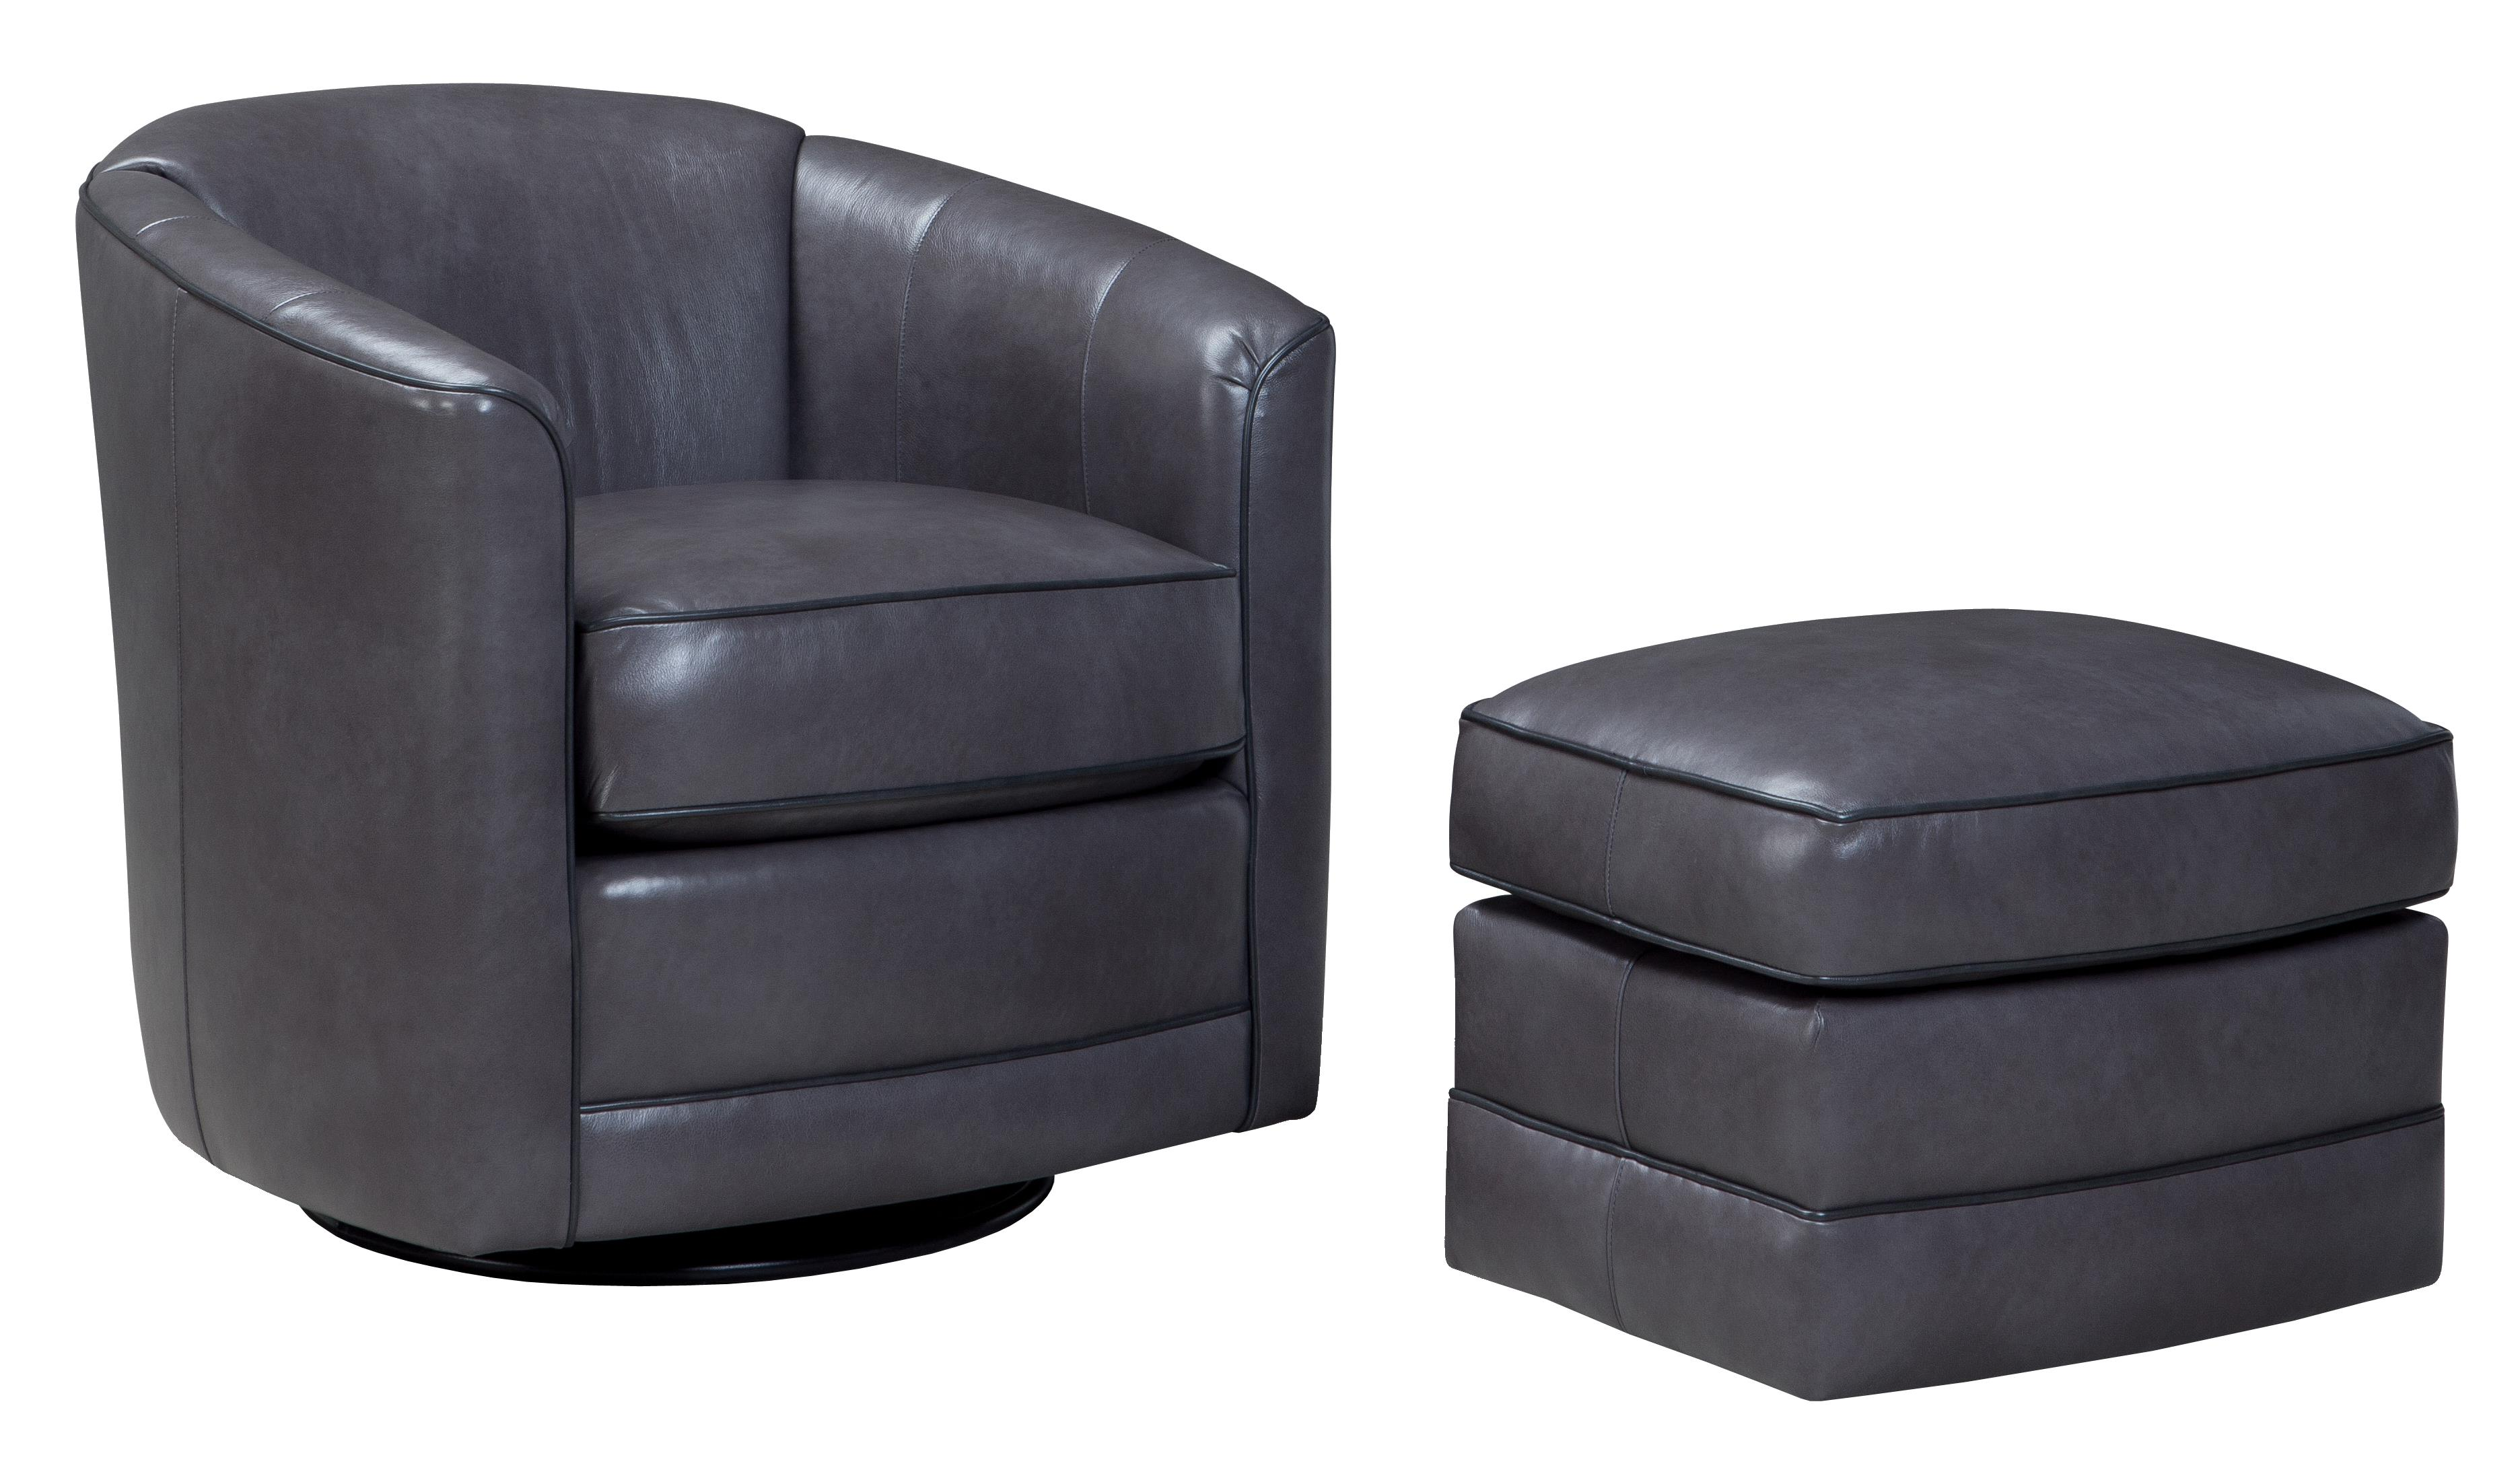 506 swivel glider chair and ottoman set by smith brothers wolf furniture. Black Bedroom Furniture Sets. Home Design Ideas